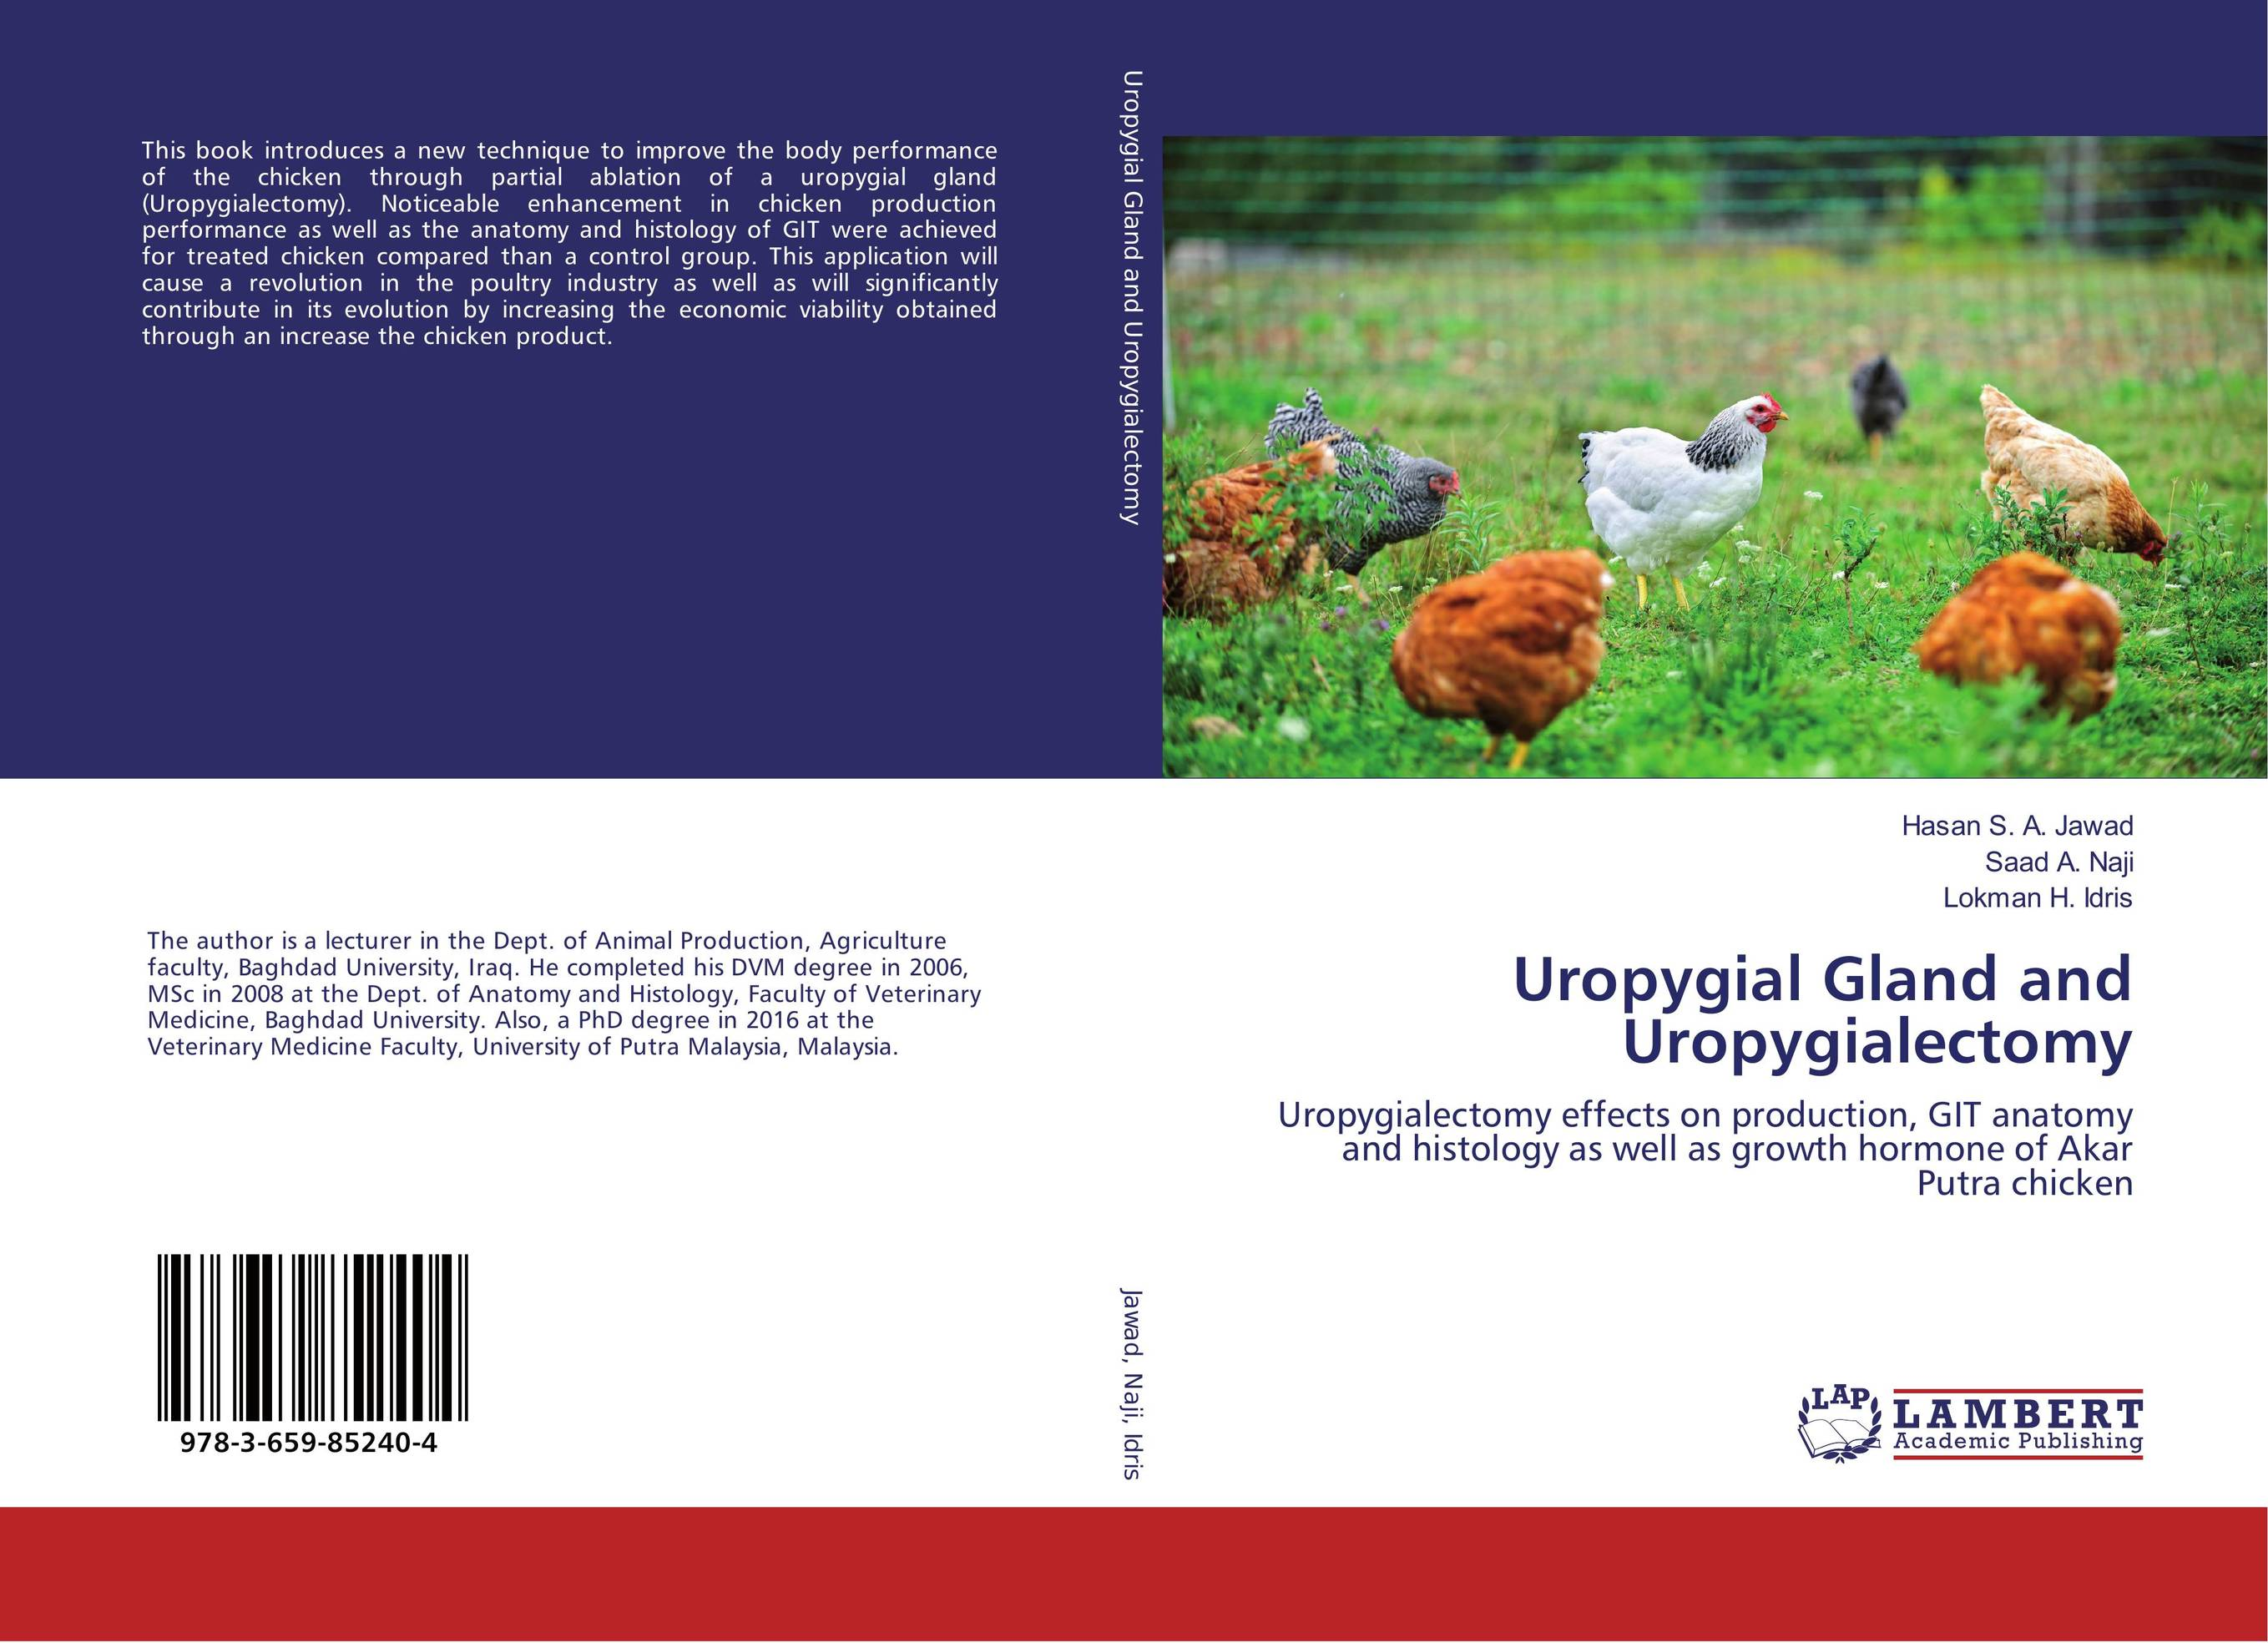 Uropygial Gland and Uropygialectomy anatomy of a disappearance